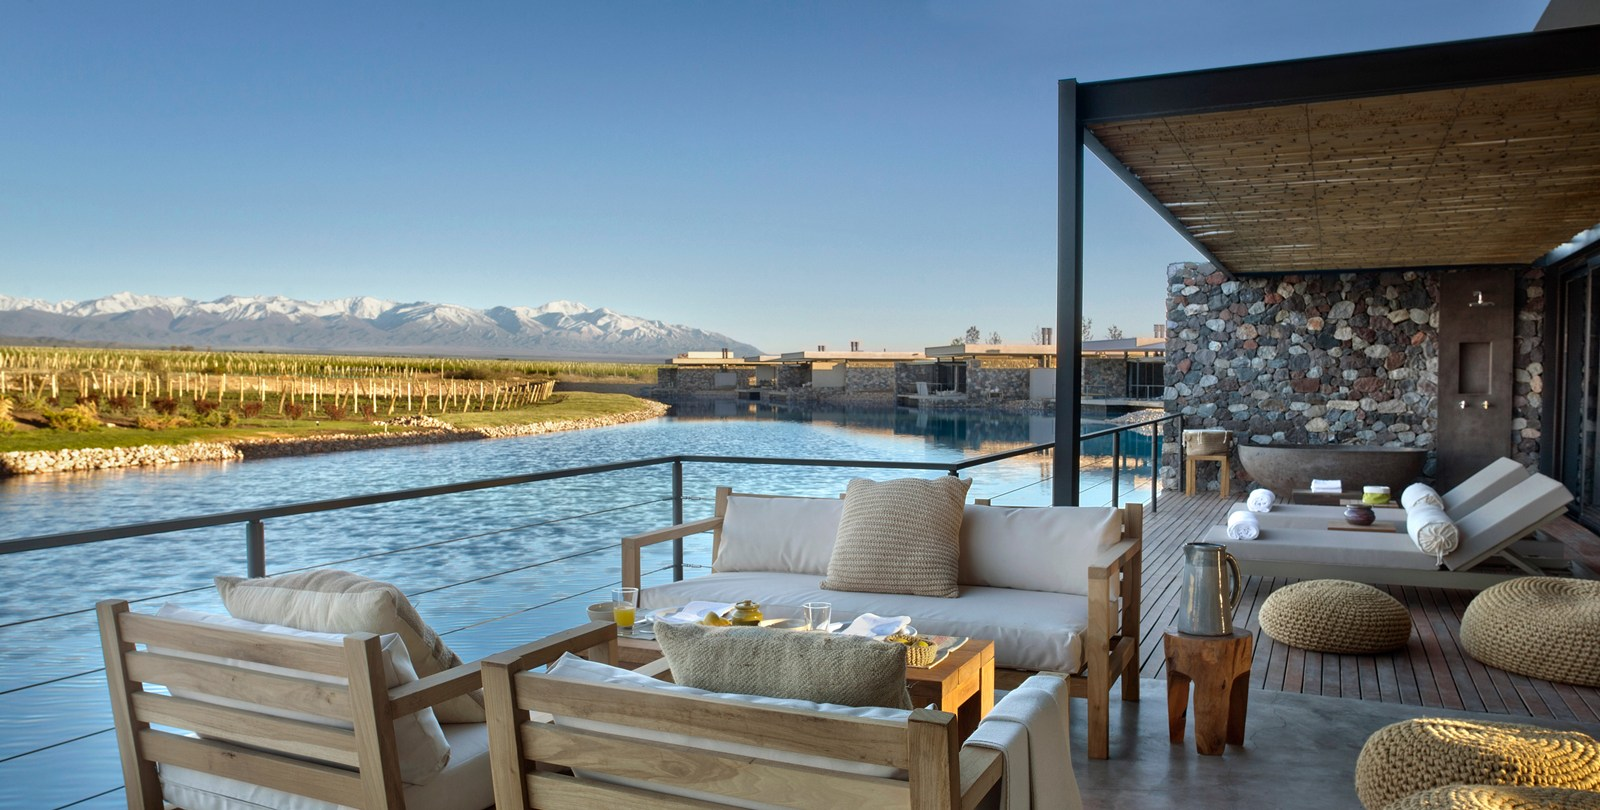 Winery and Spa Resort of the Week: The Vines Resort & Spa